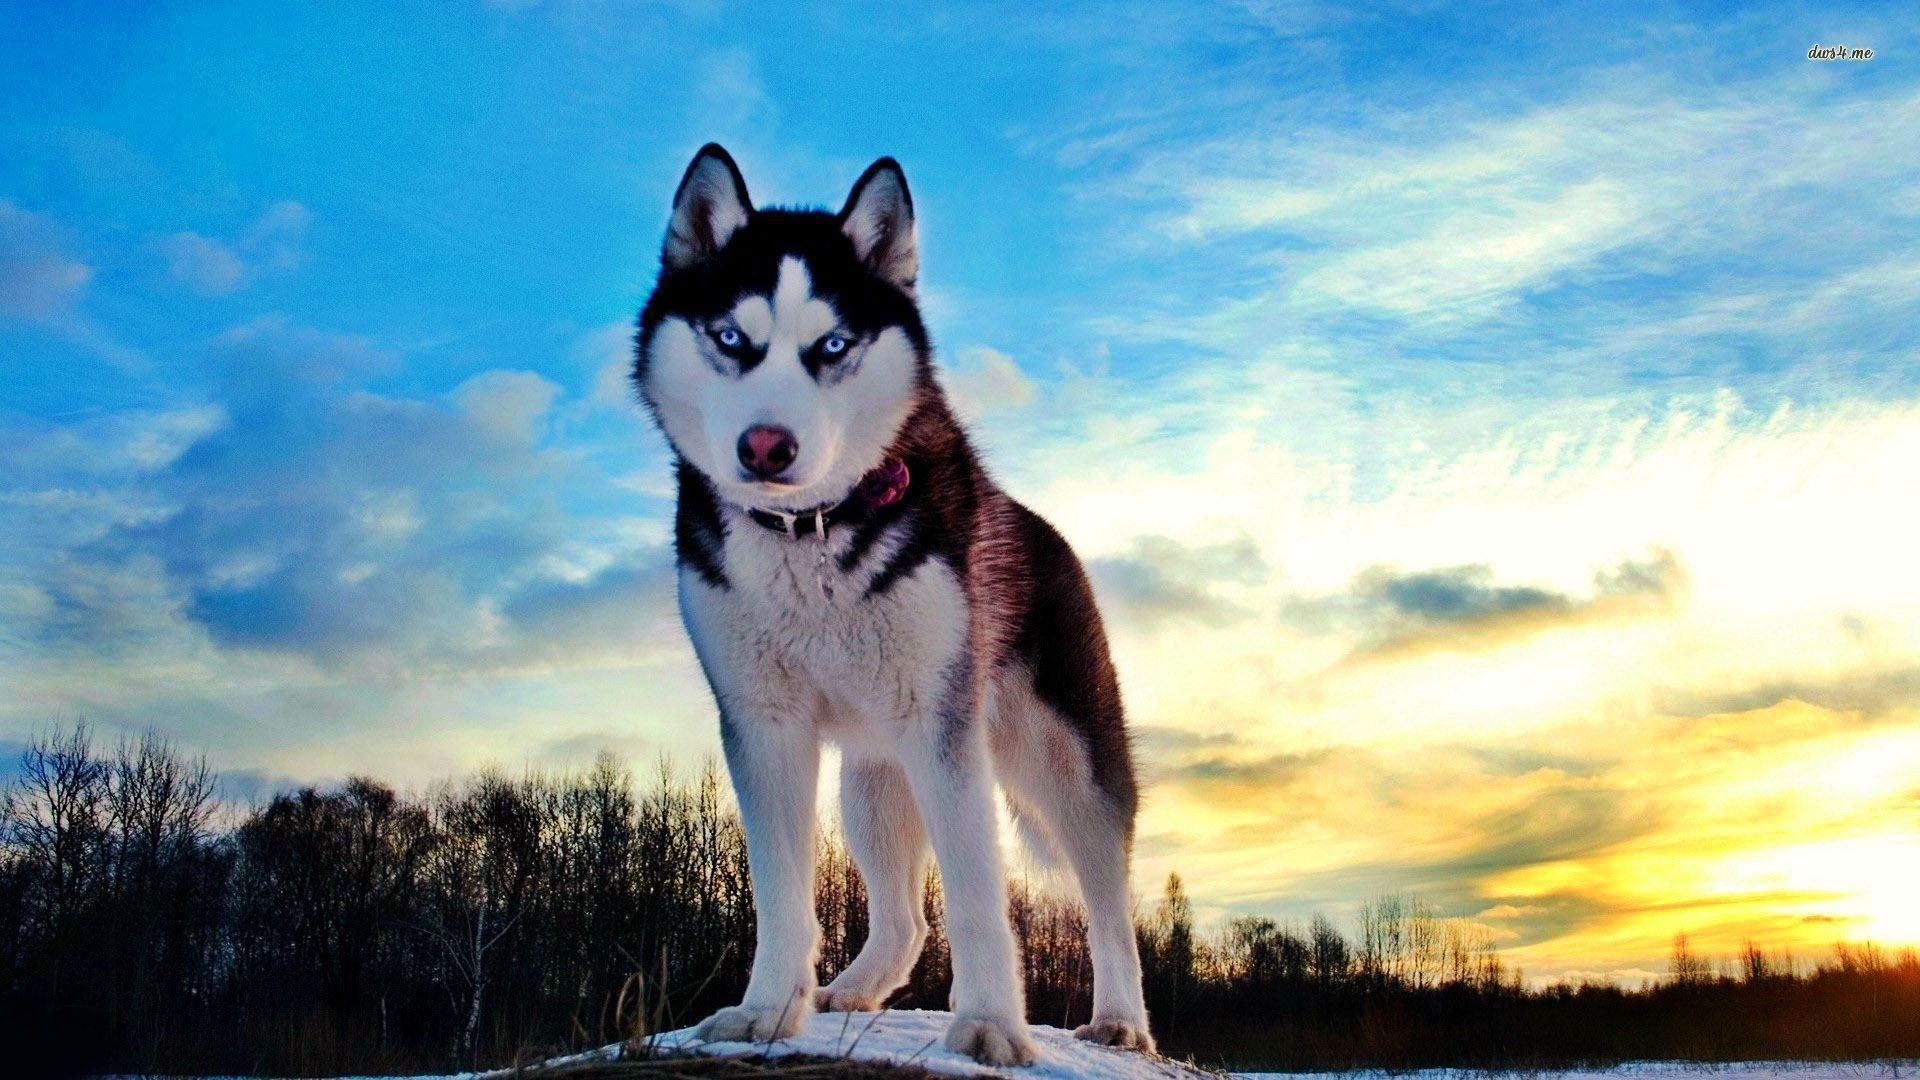 siberian husky wallpapers wallpaper cave. Black Bedroom Furniture Sets. Home Design Ideas